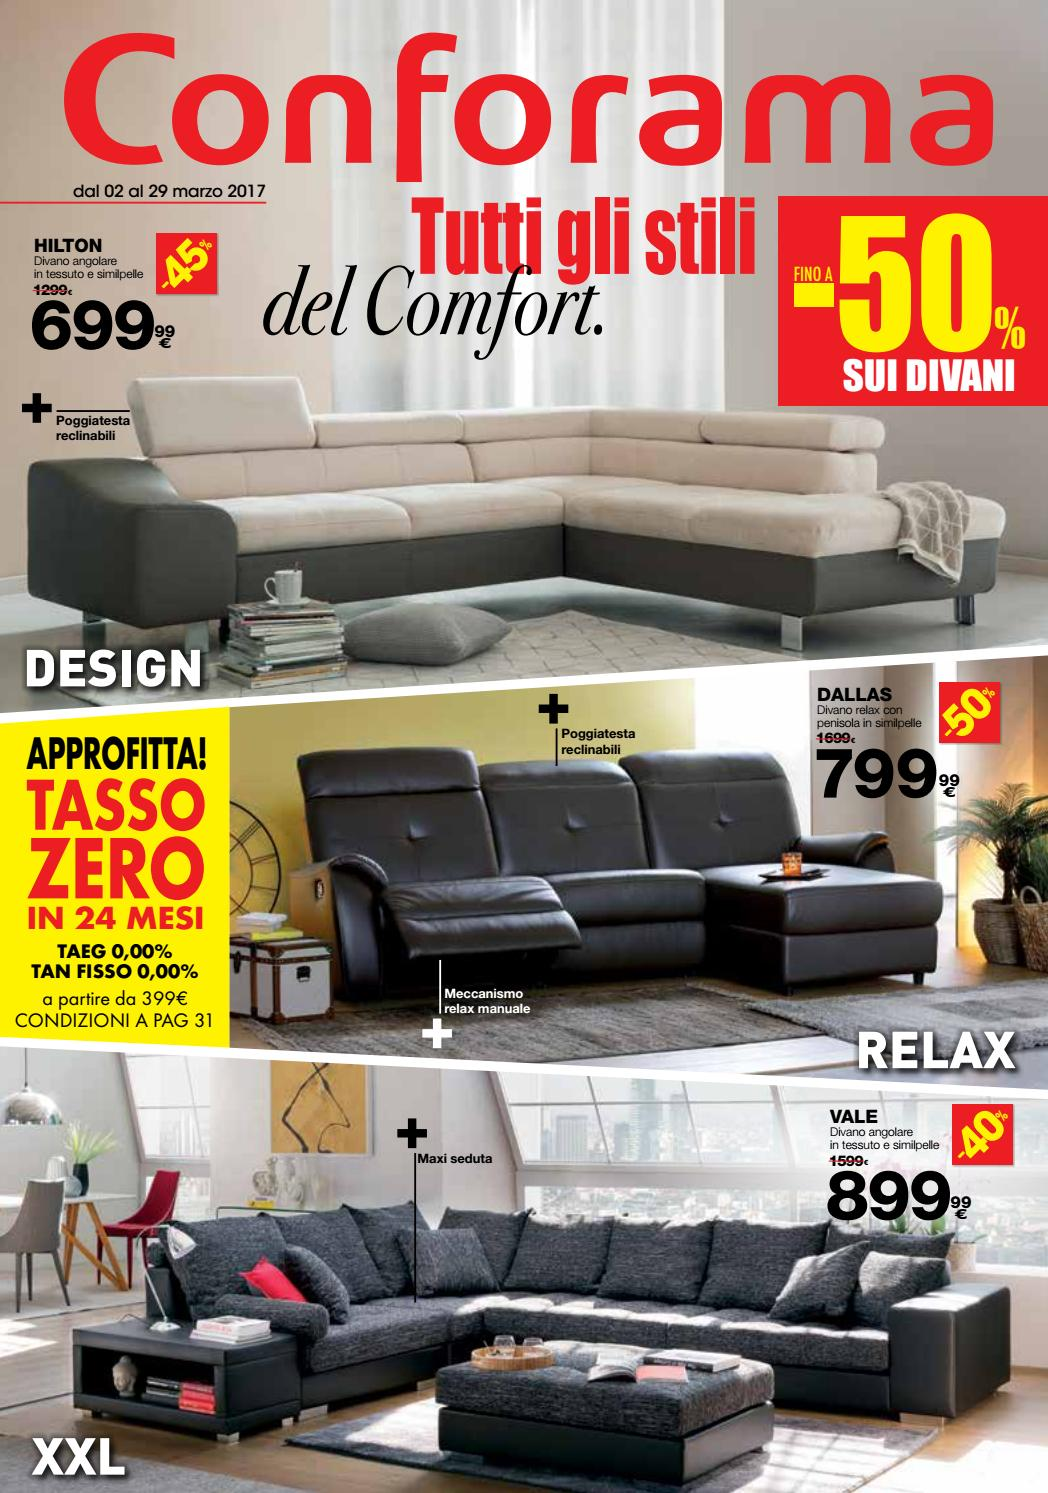 Divani Angolari Curvi.Conforama 29mar By Best Of Volantinoweb Issuu